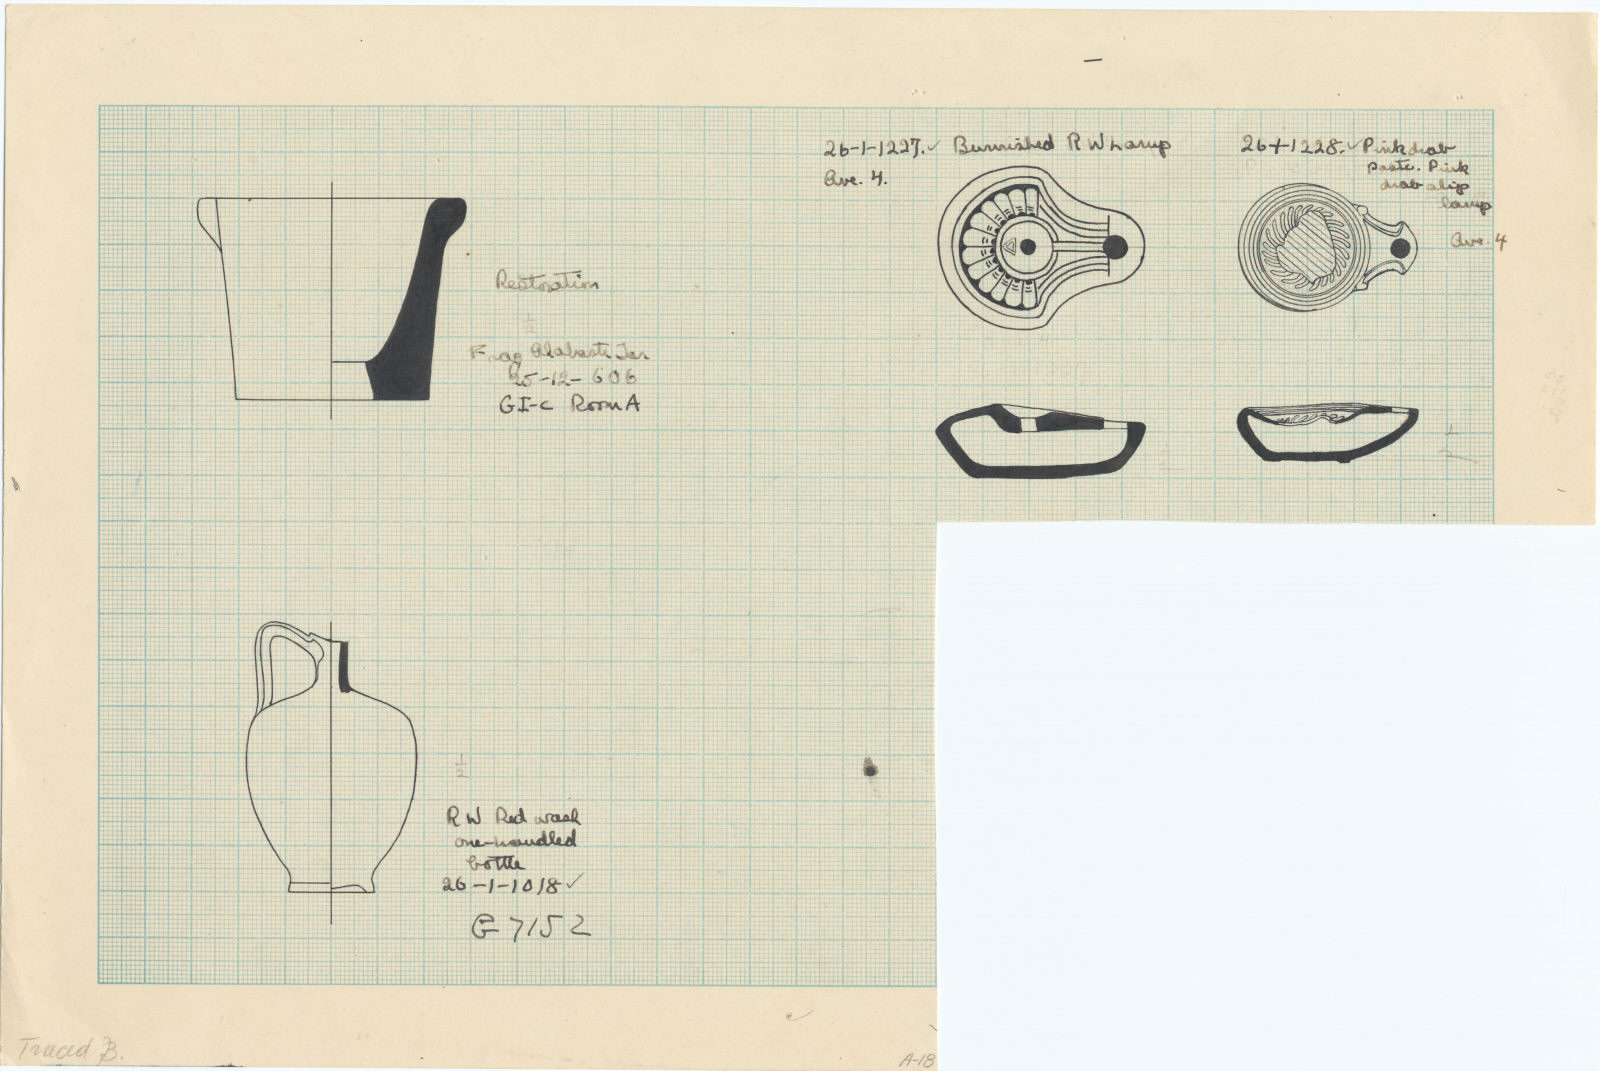 Drawings: Objects from Avenue G 4, G I-c, and G 7152